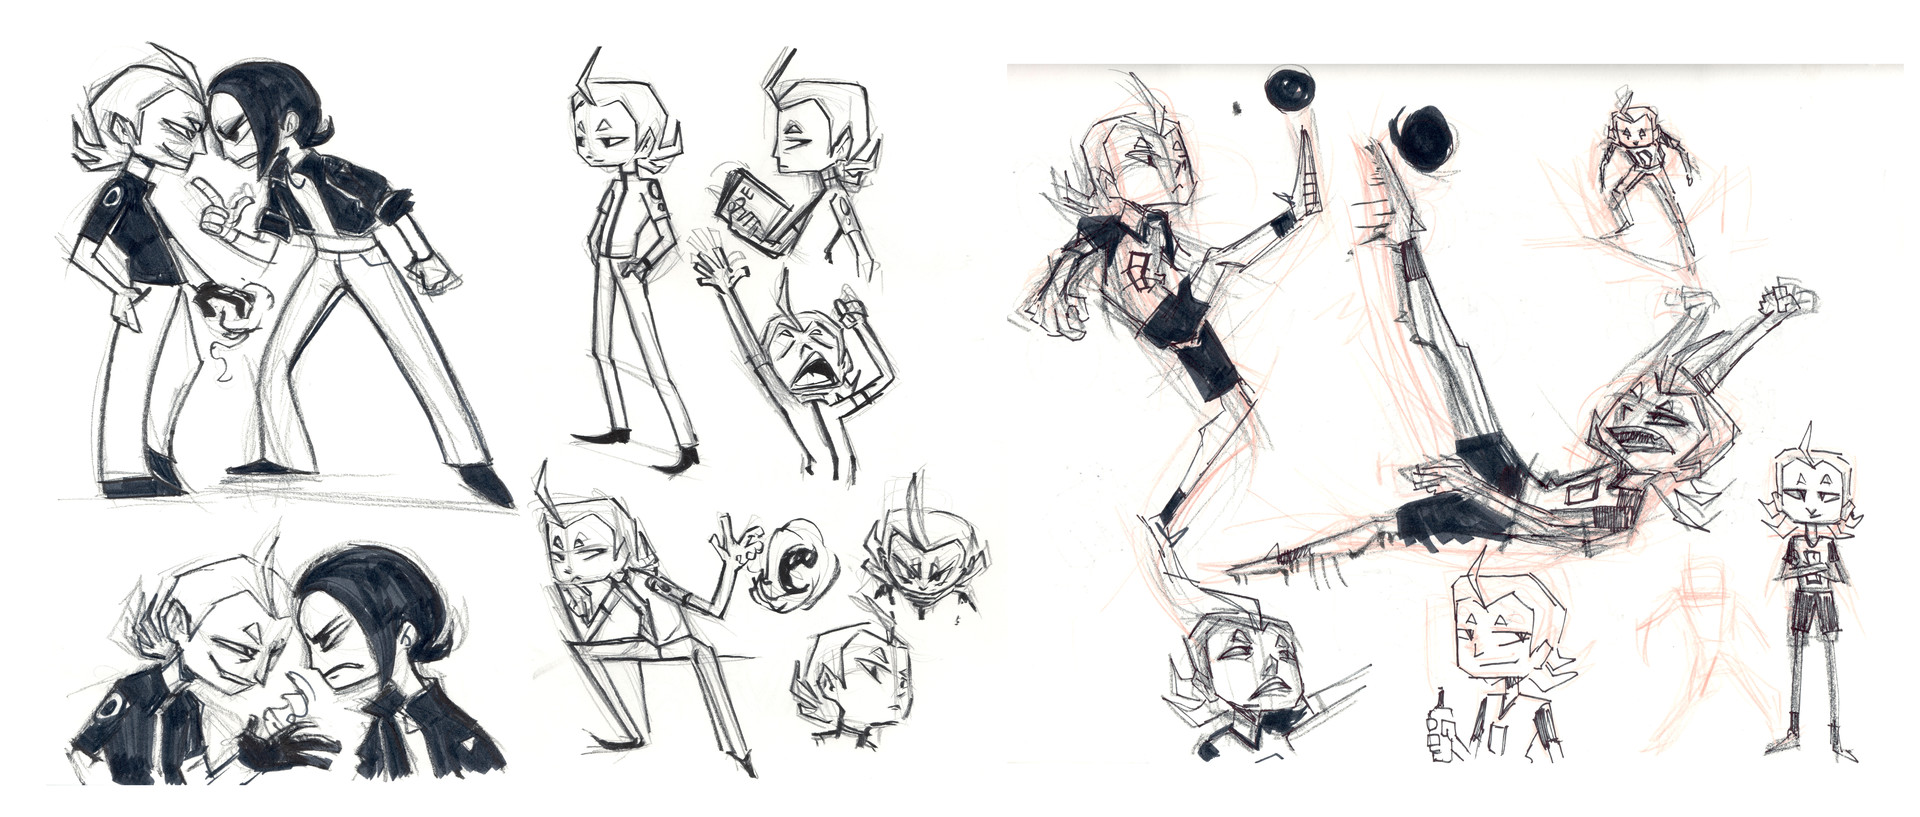 Early developmental sketches of Ken's rival, Silas Whatley.